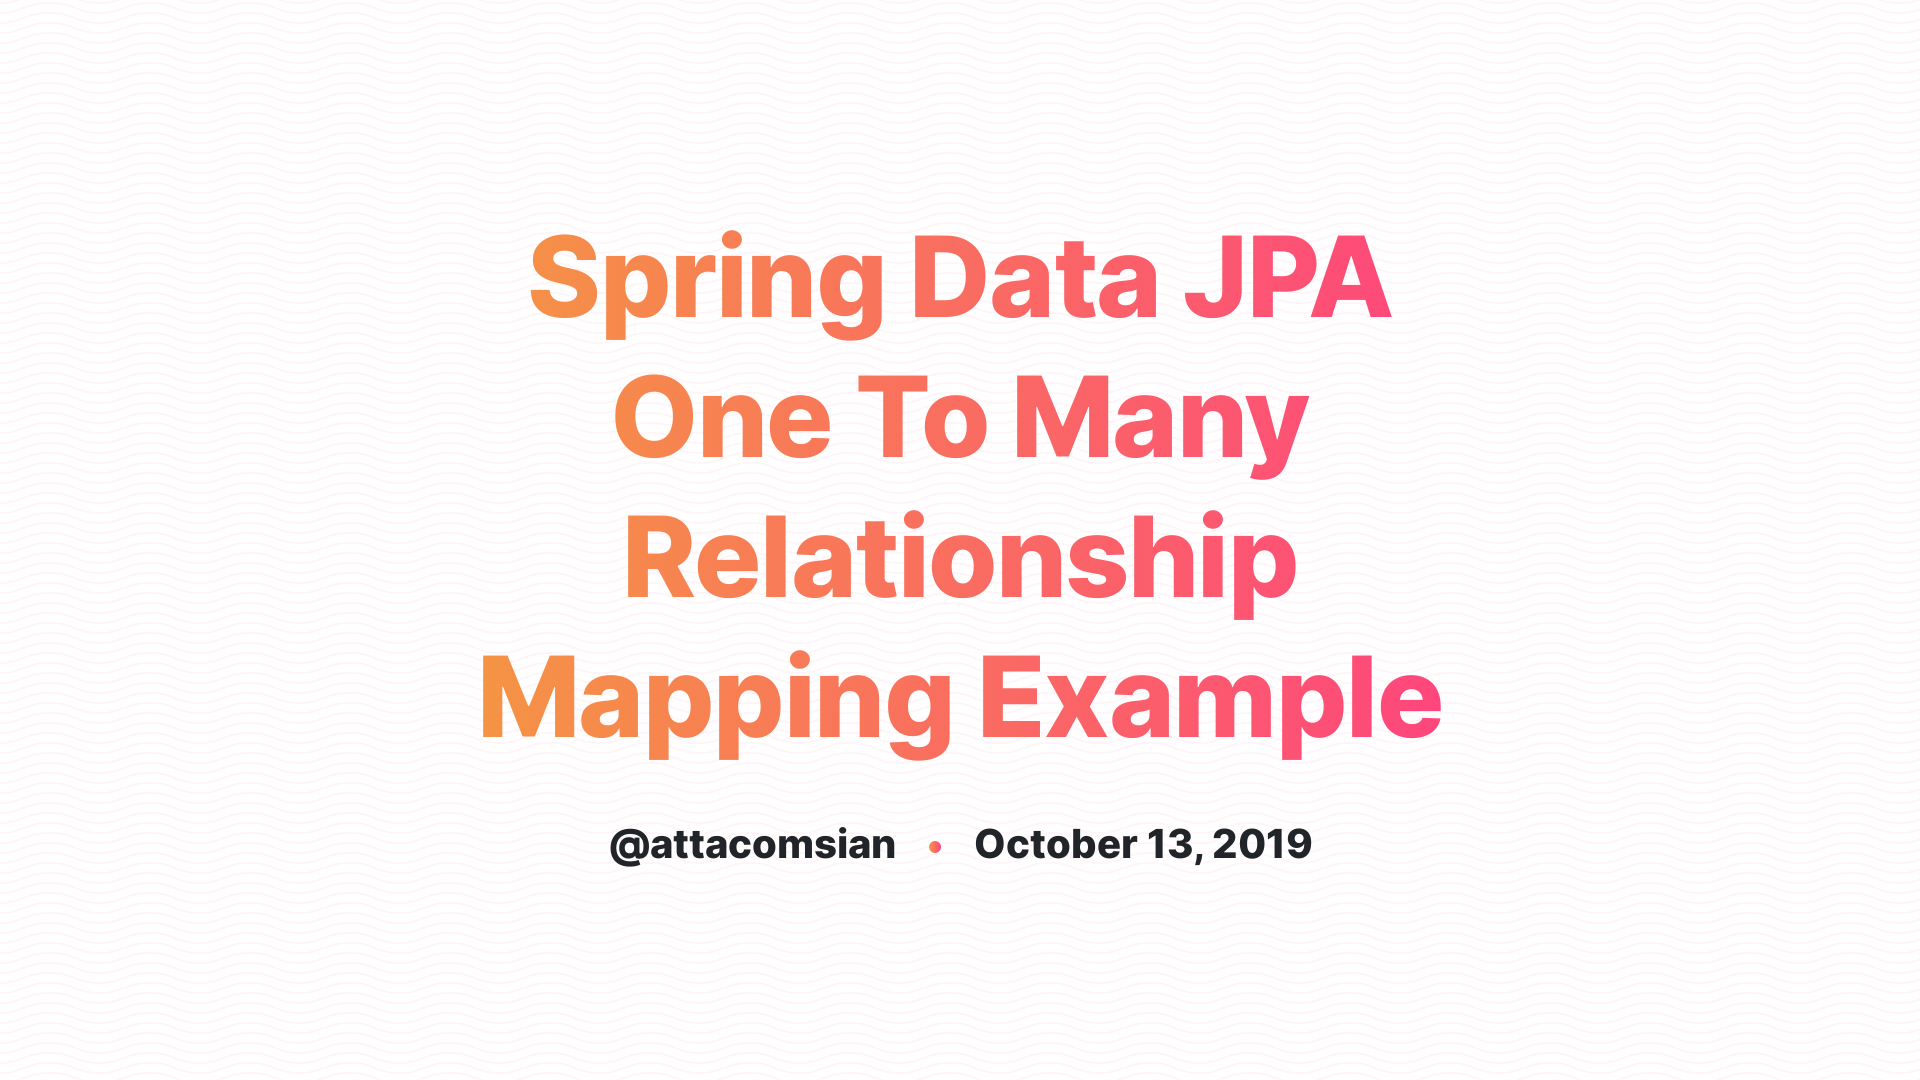 Spring Data JPA One To Many Relationship Mapping Example